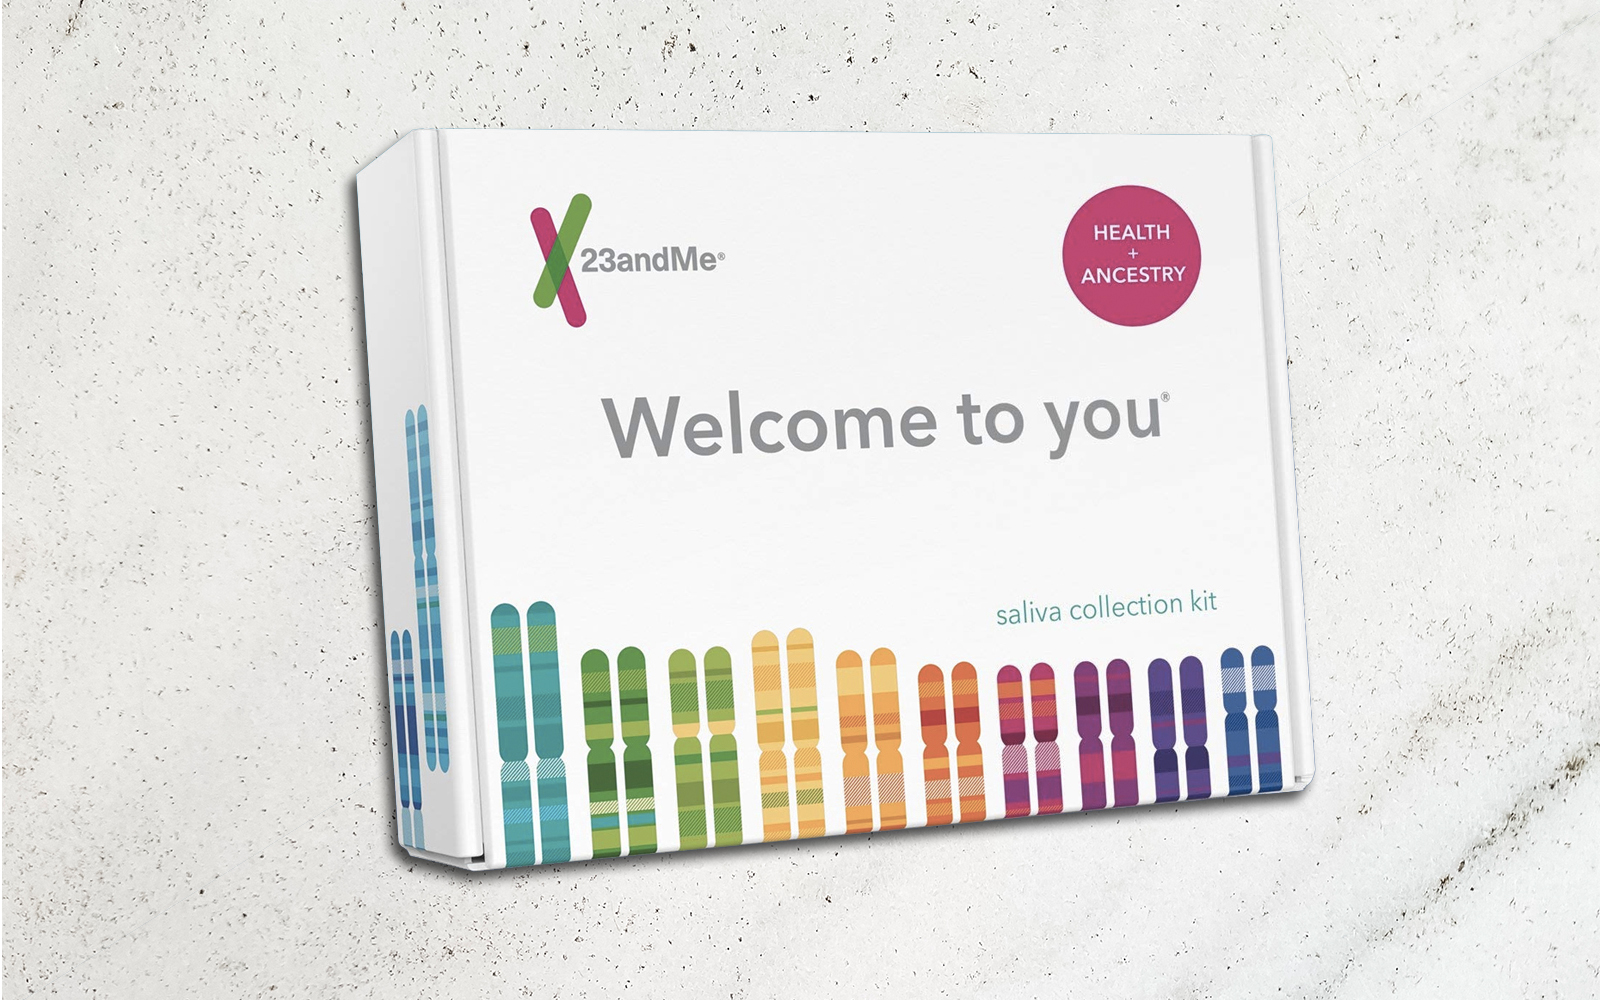 23andMe's Best-selling DNA Test Is $70 Off on Amazon Right Now